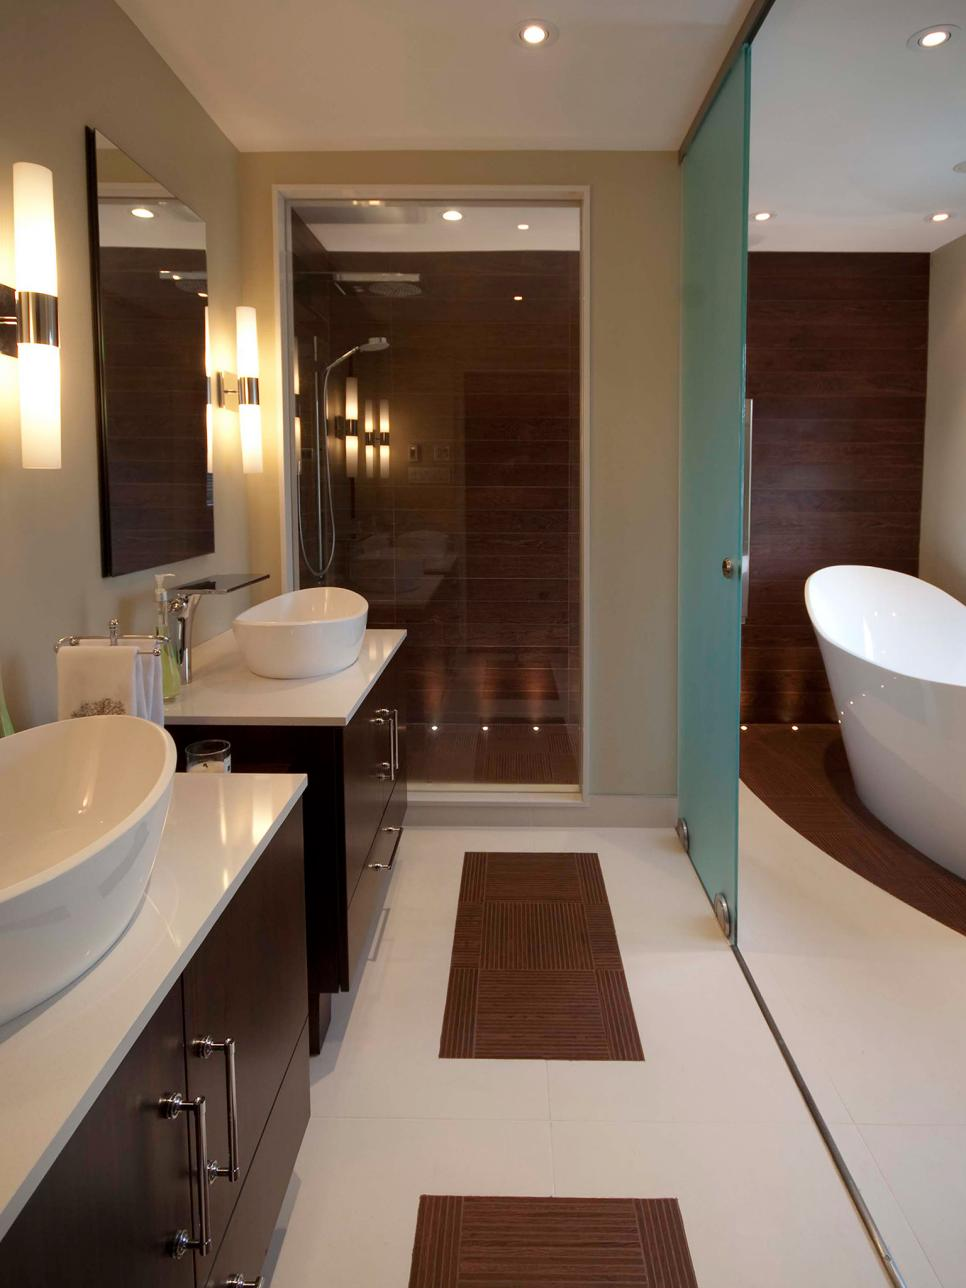 bathroom designs - Design Ideas For Bathrooms